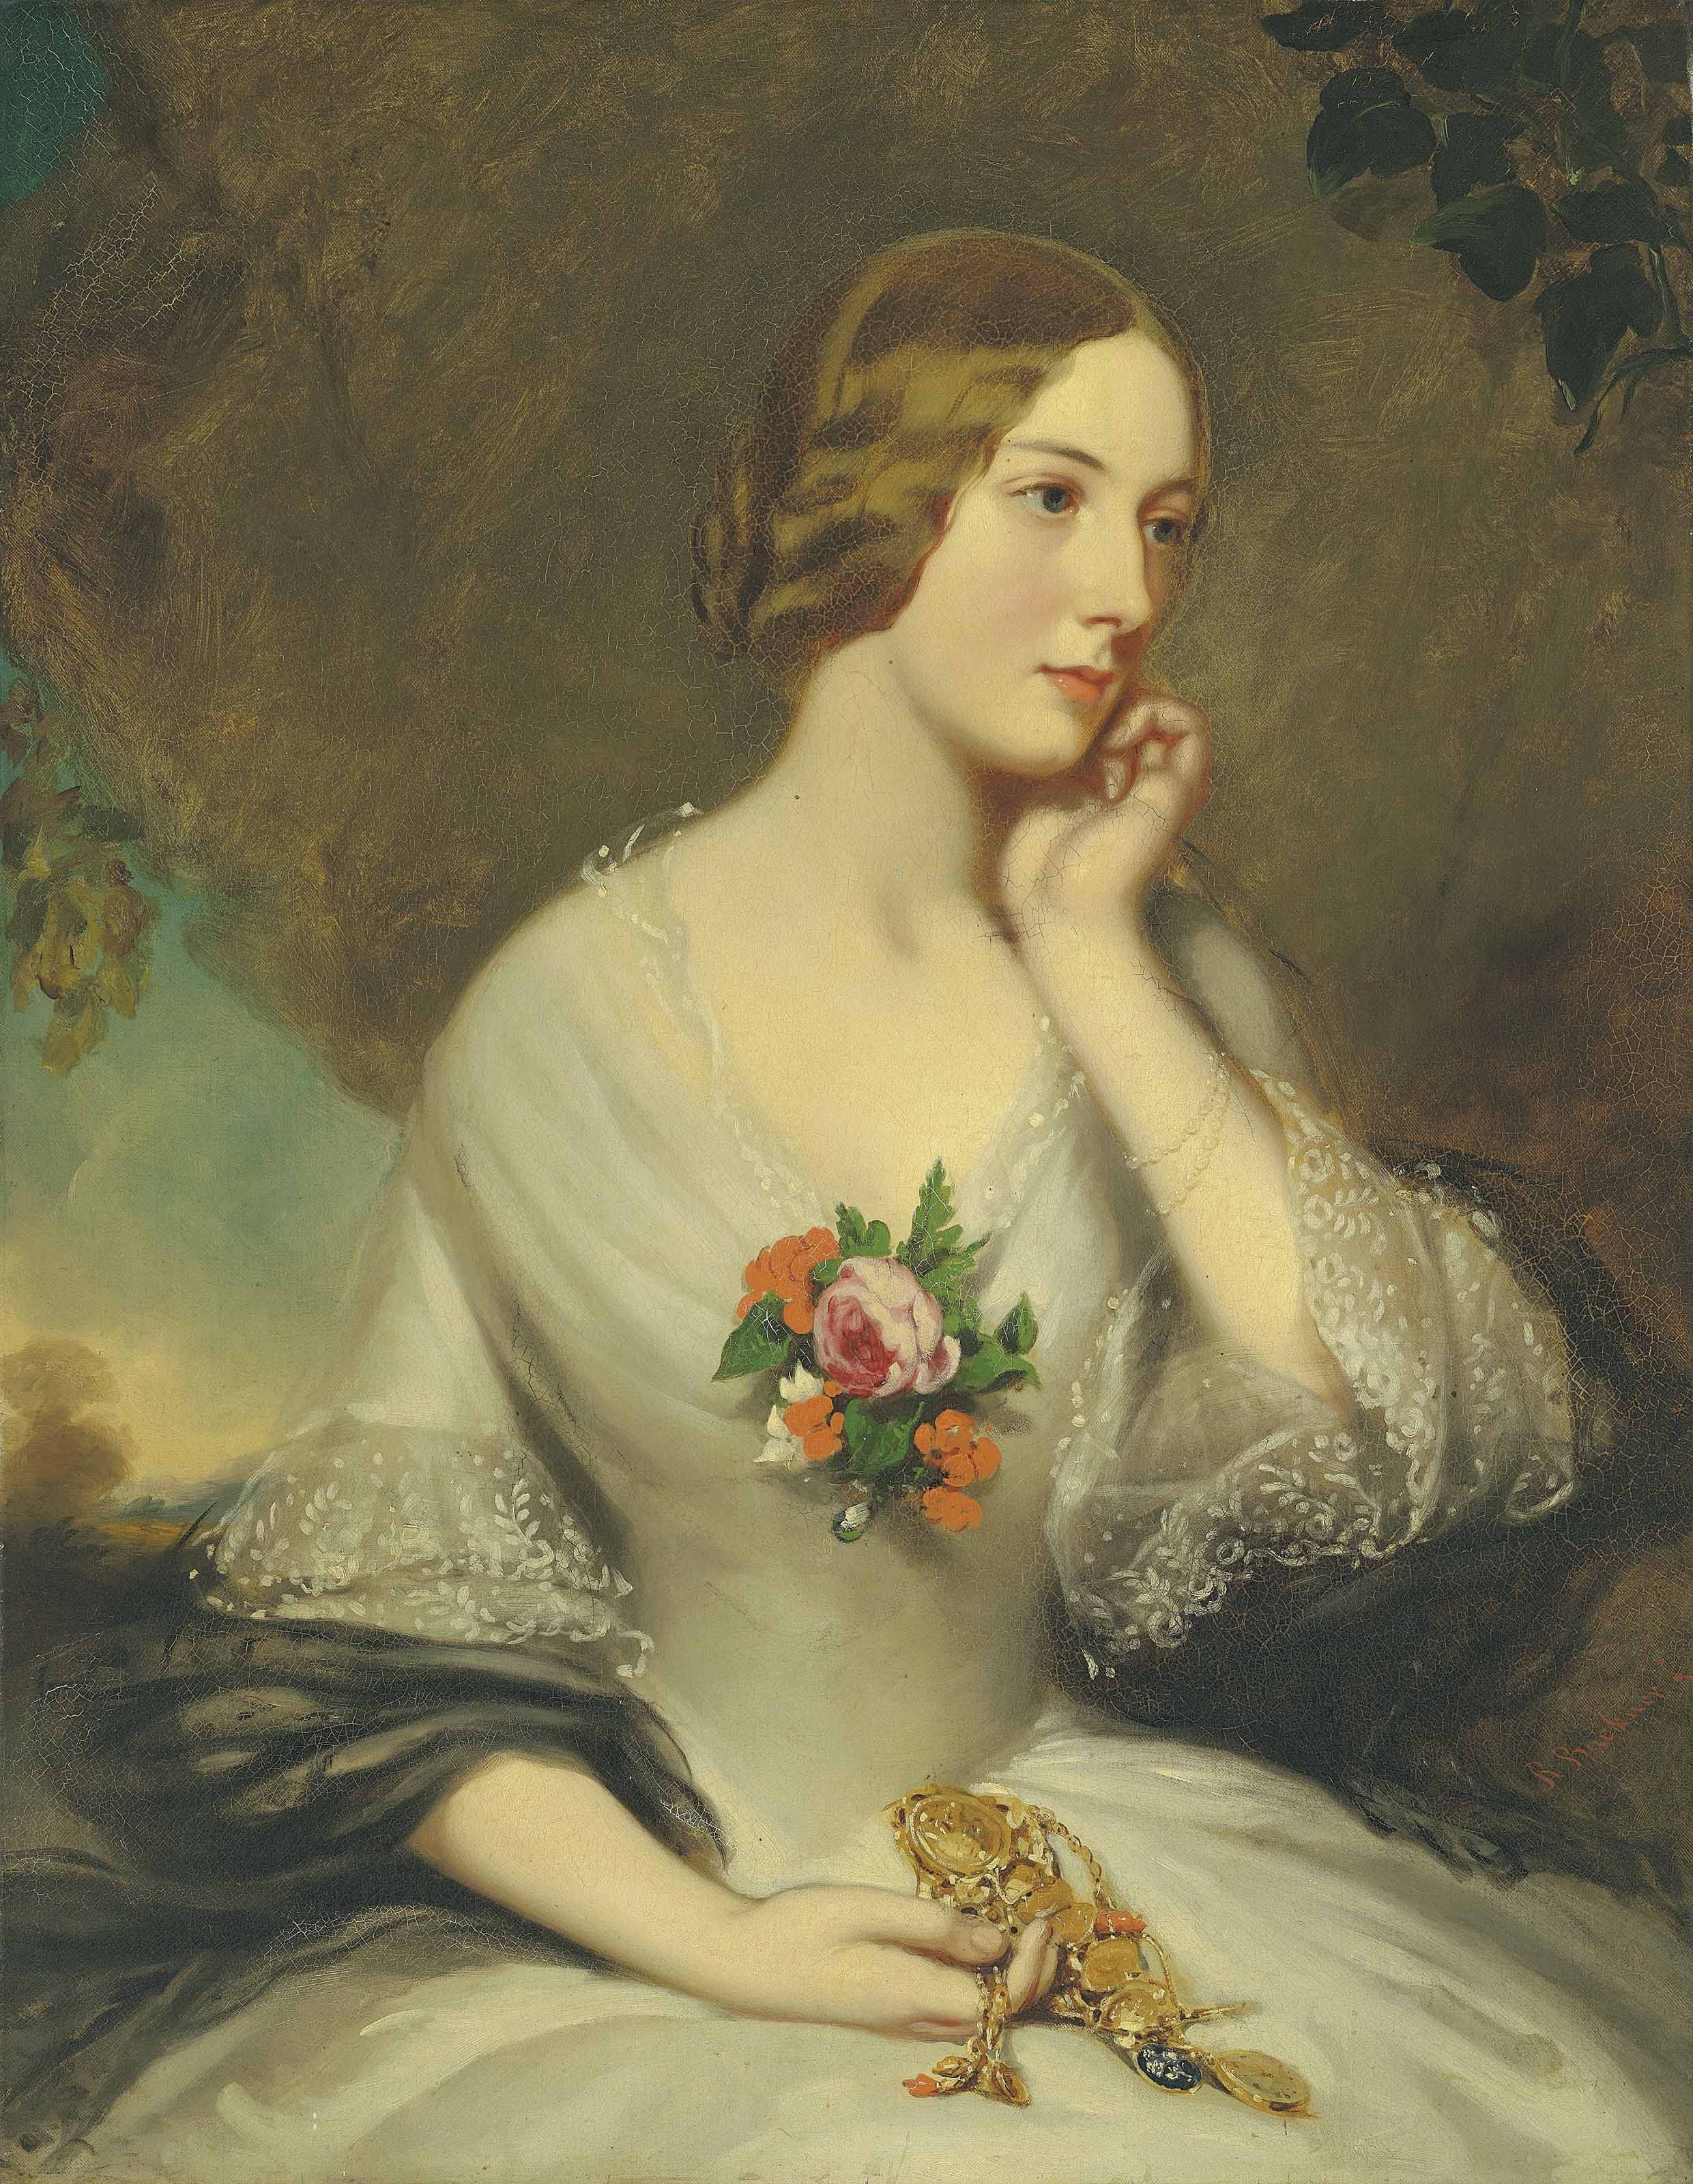 Portrait of Elizabeth Baring, née Sturt (1827-1867), wife of Thomas George Baring, 1st Earl of Northbrook, half-length, in a landscape